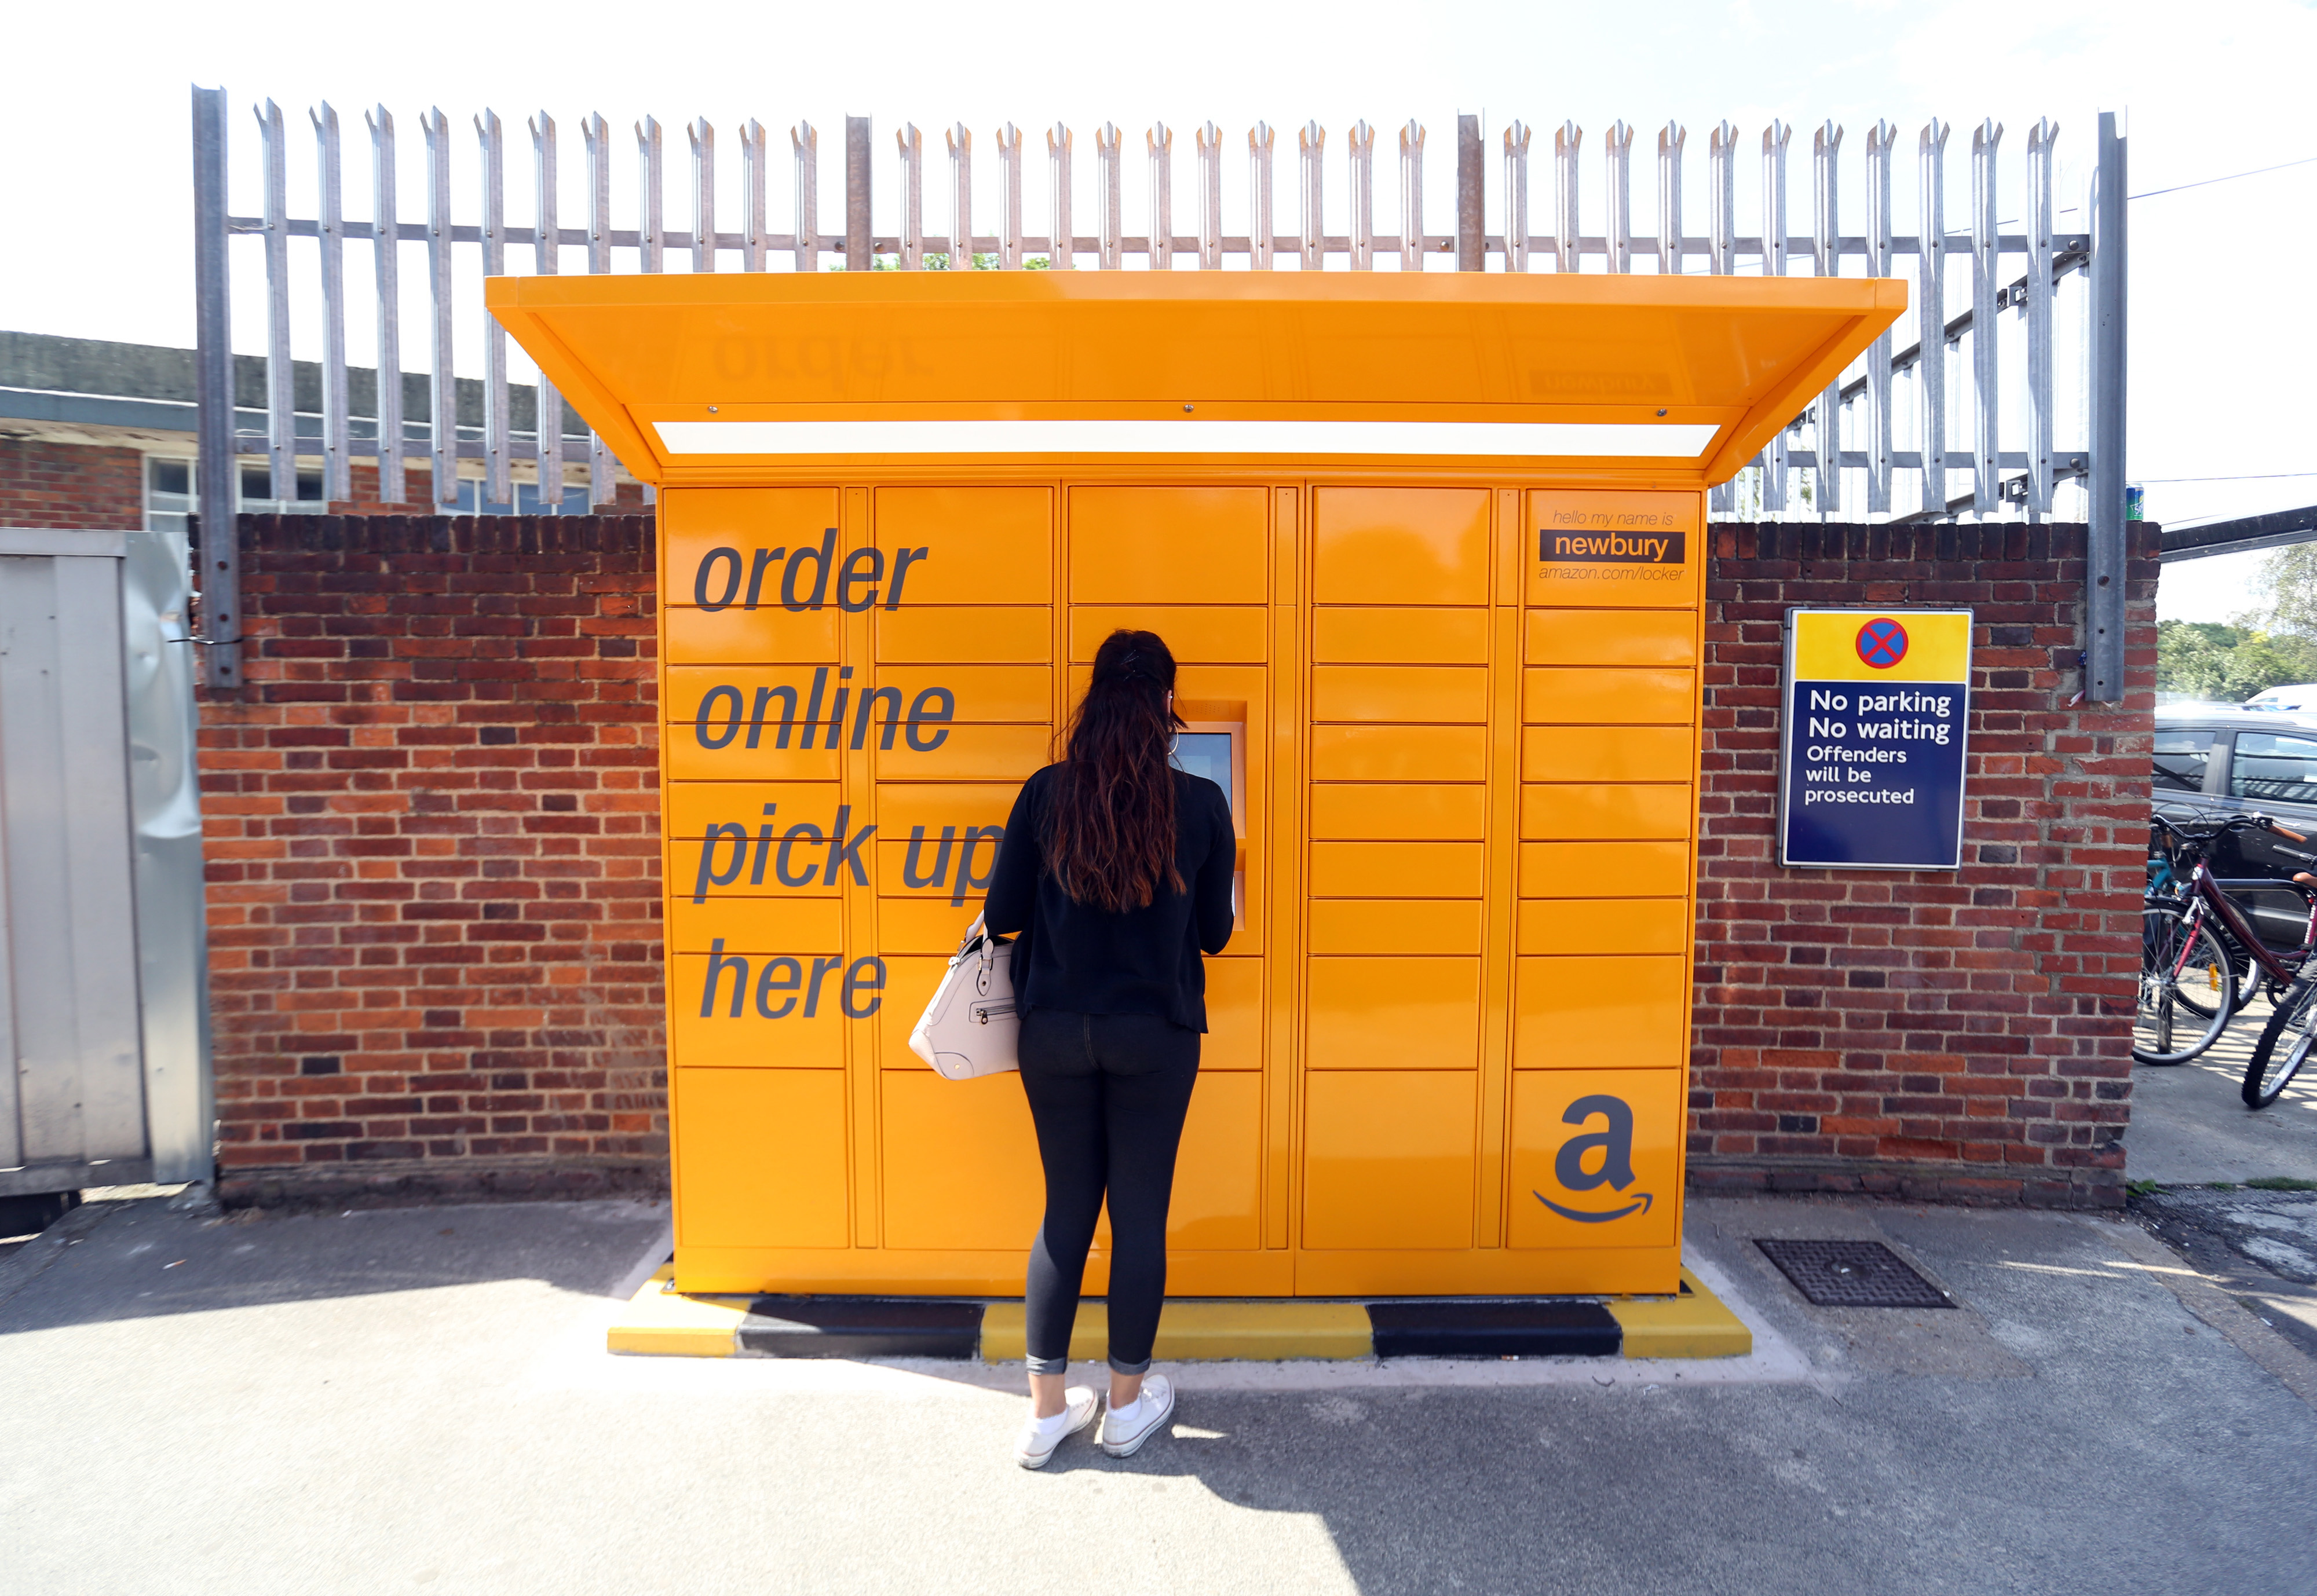 An Amazon pickup and collect locker.